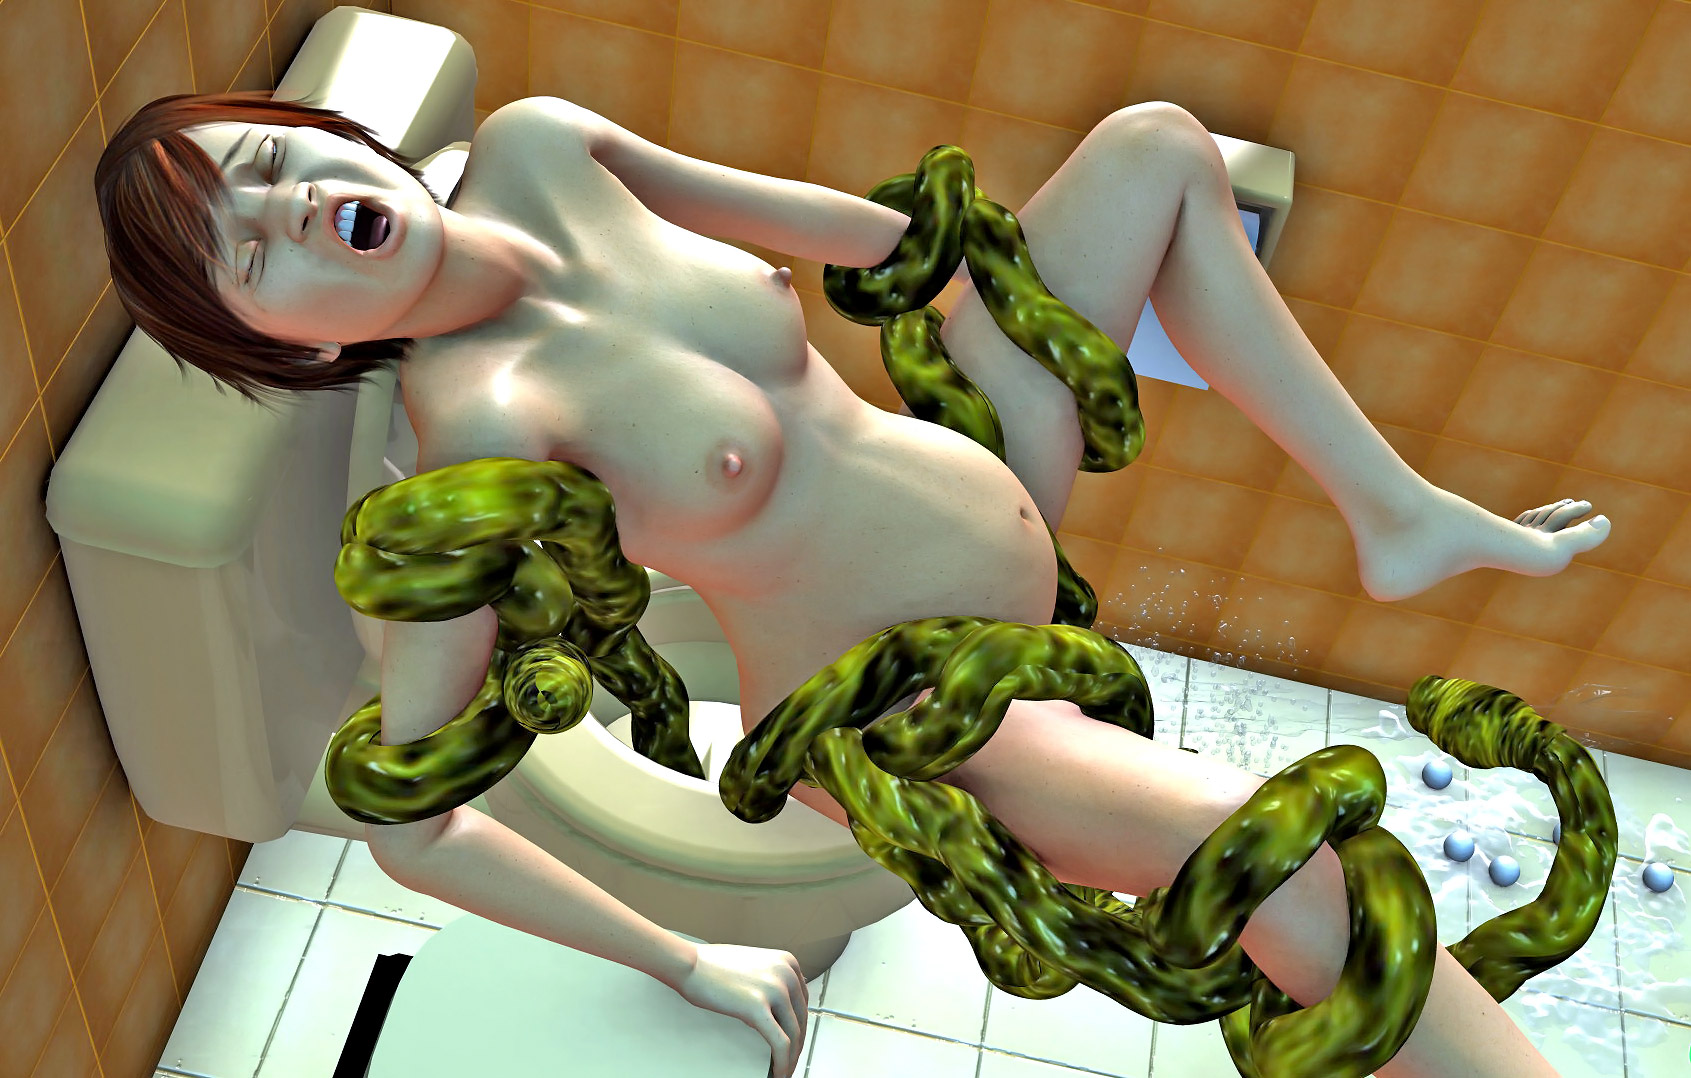 3d hd sex monster naked clips